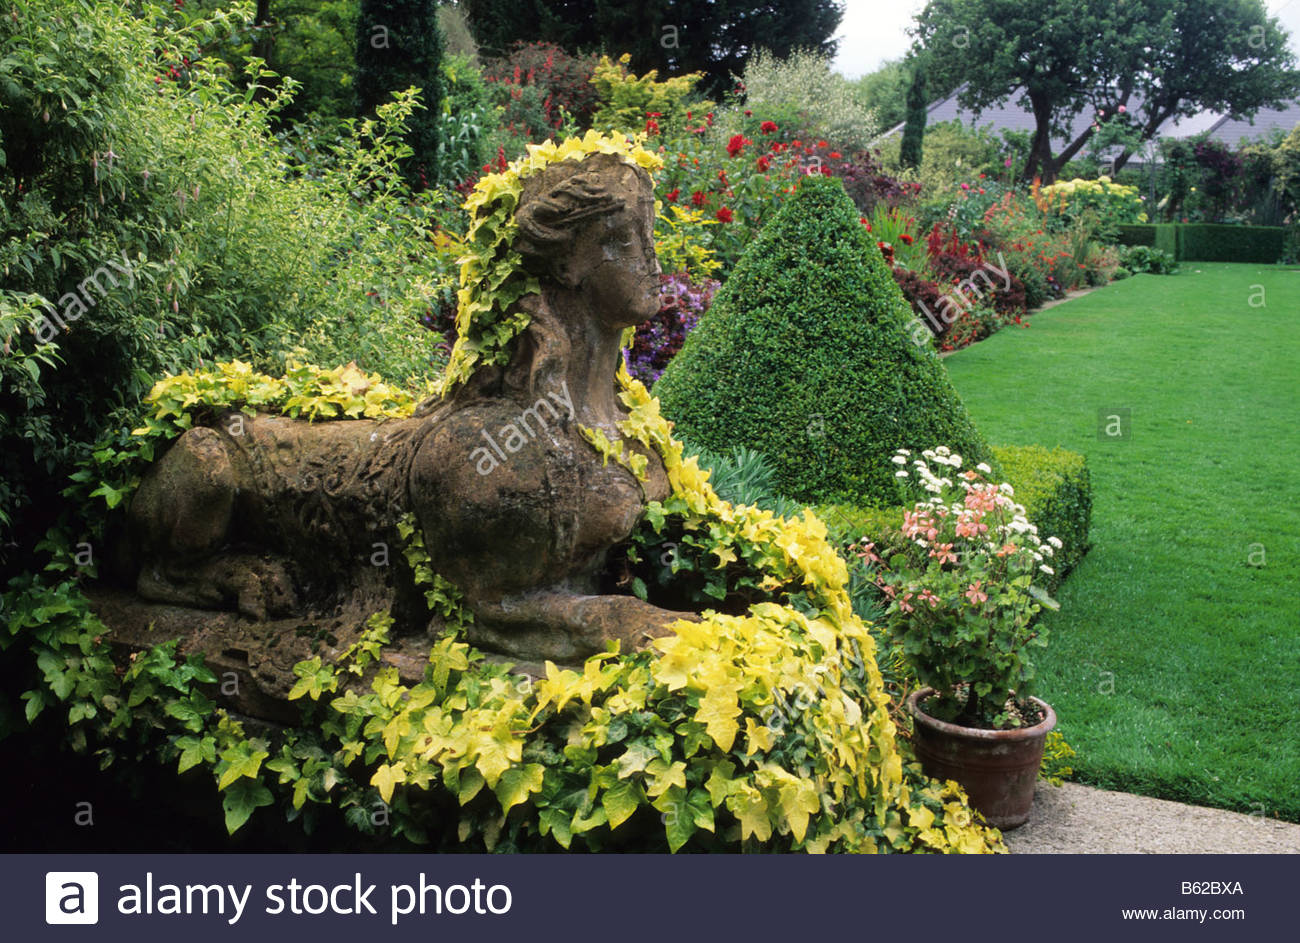 Stock Photo   The Dillon Garden Dublin Ireland Large Town Suburban Garden  Stone Sphinx Statue Covered With Hedera Helix Buttercup And Pyramid